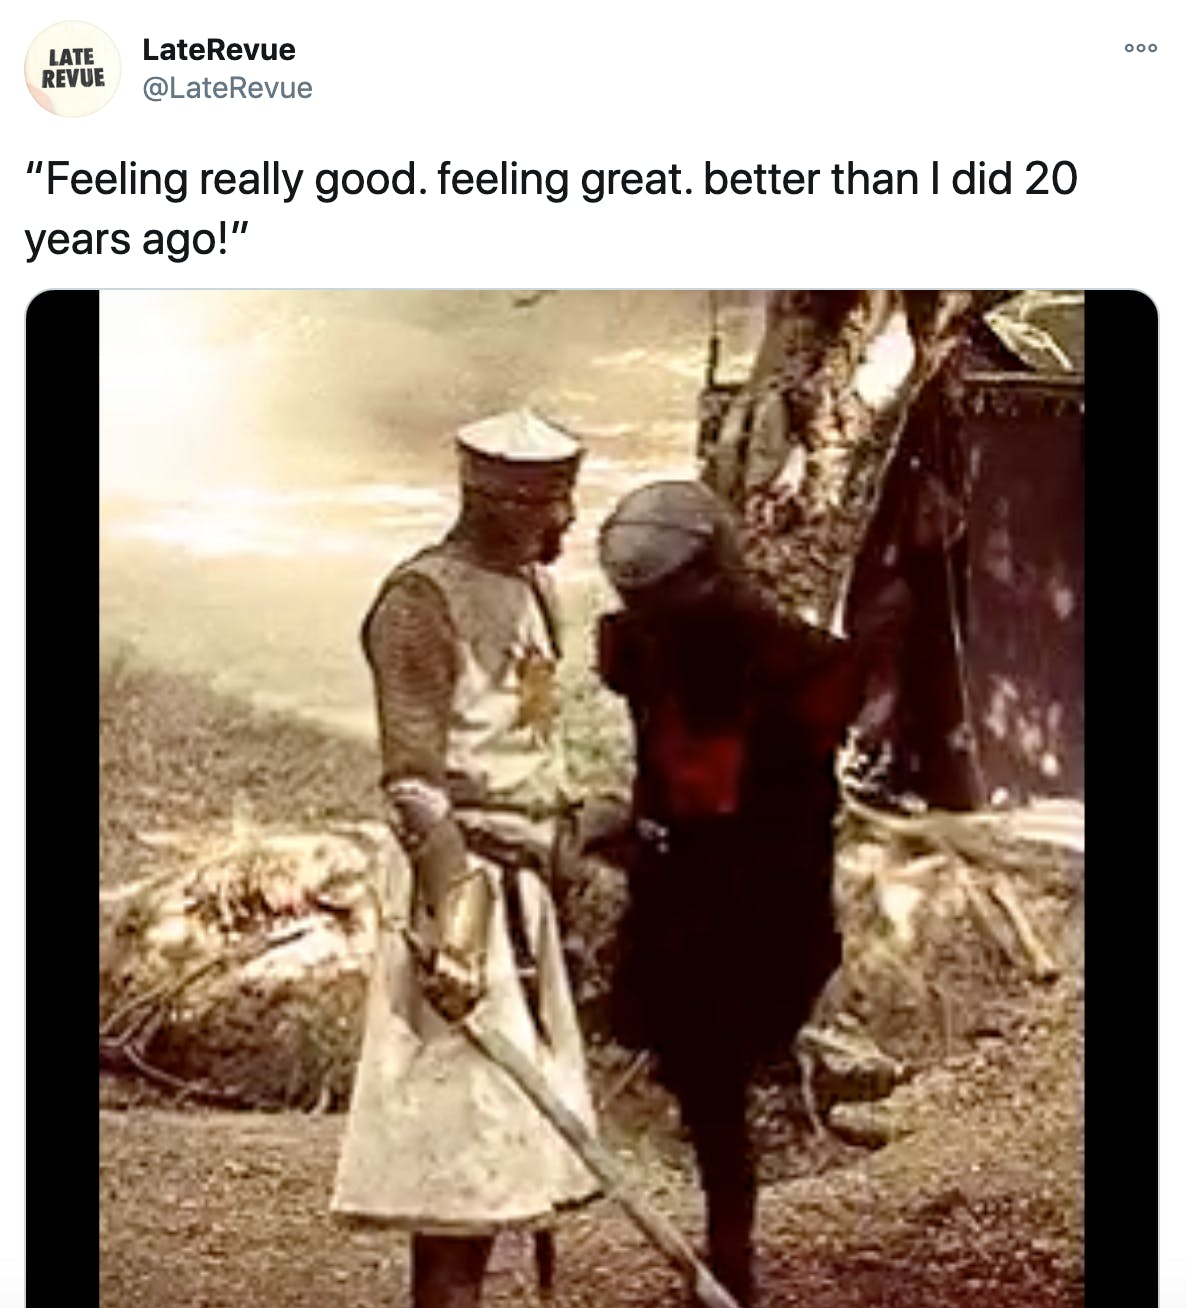 """""""""""Feeling really good. feeling great. better than I did 20 years ago!"""""""" gif of the Black Knight from Monty Python and the Holy Grail after he's lost both arms and one leg"""